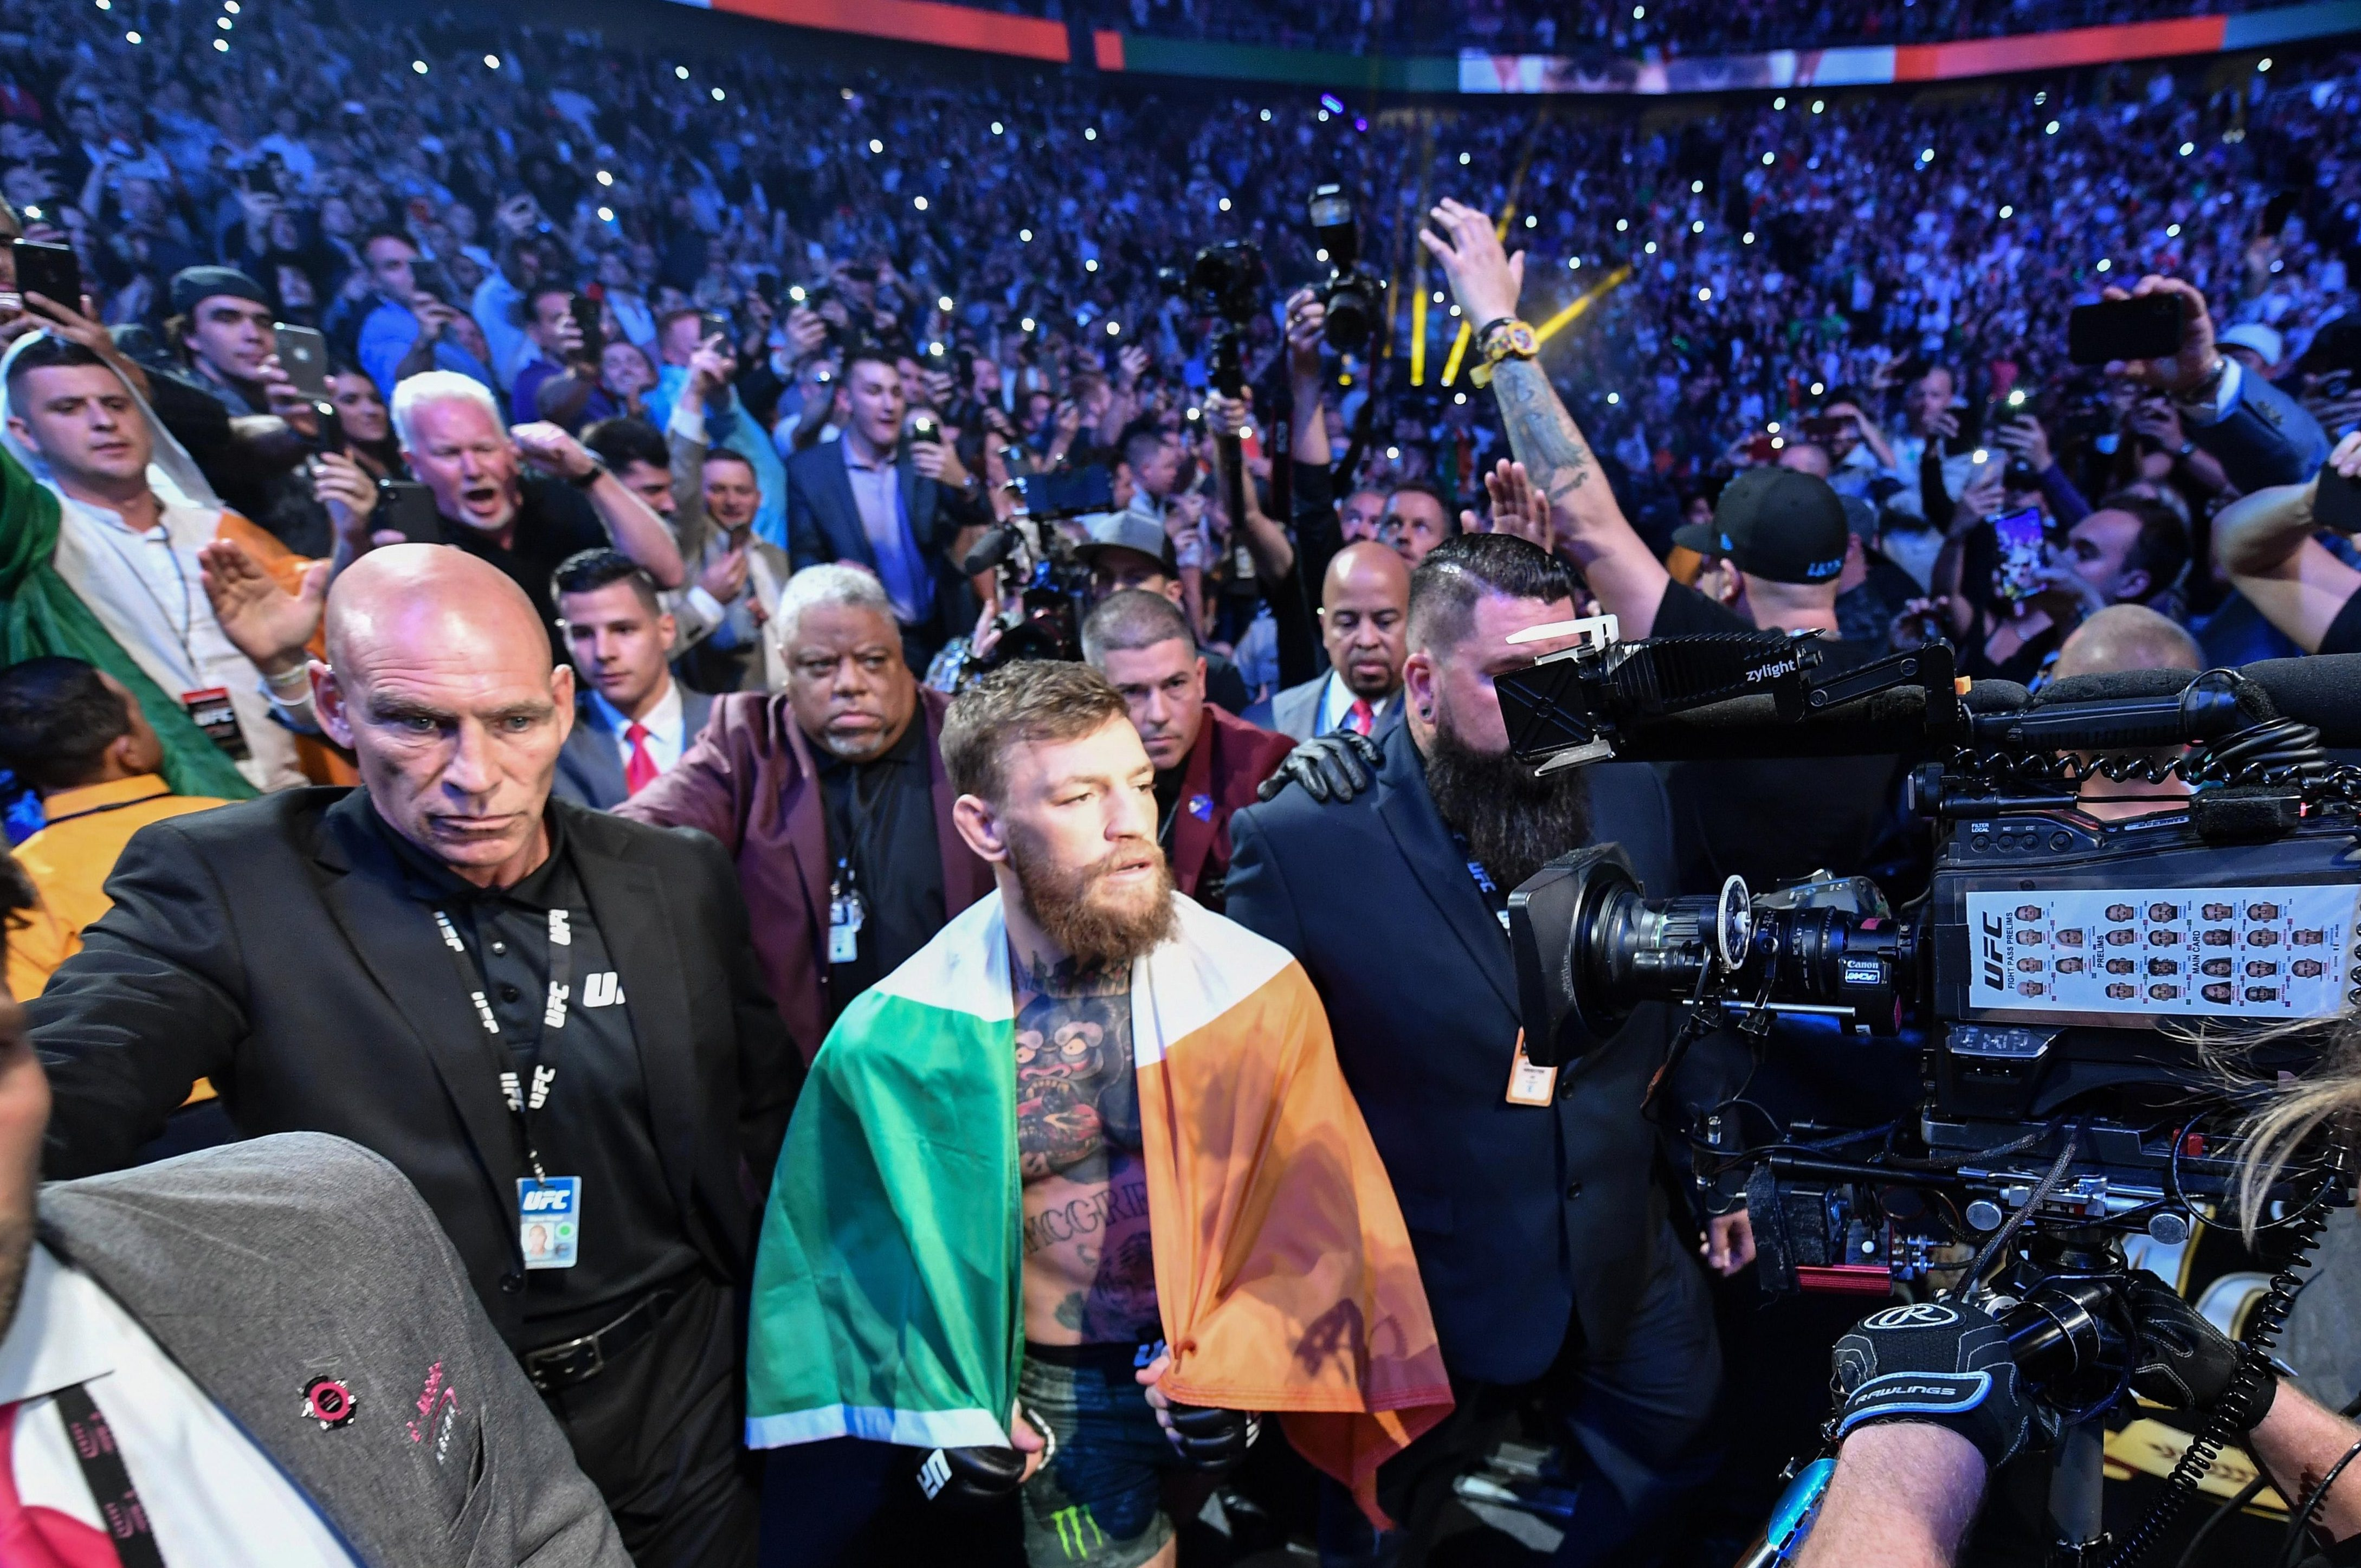 Conor McGregor returned to the octagon after a near two-year hiatus